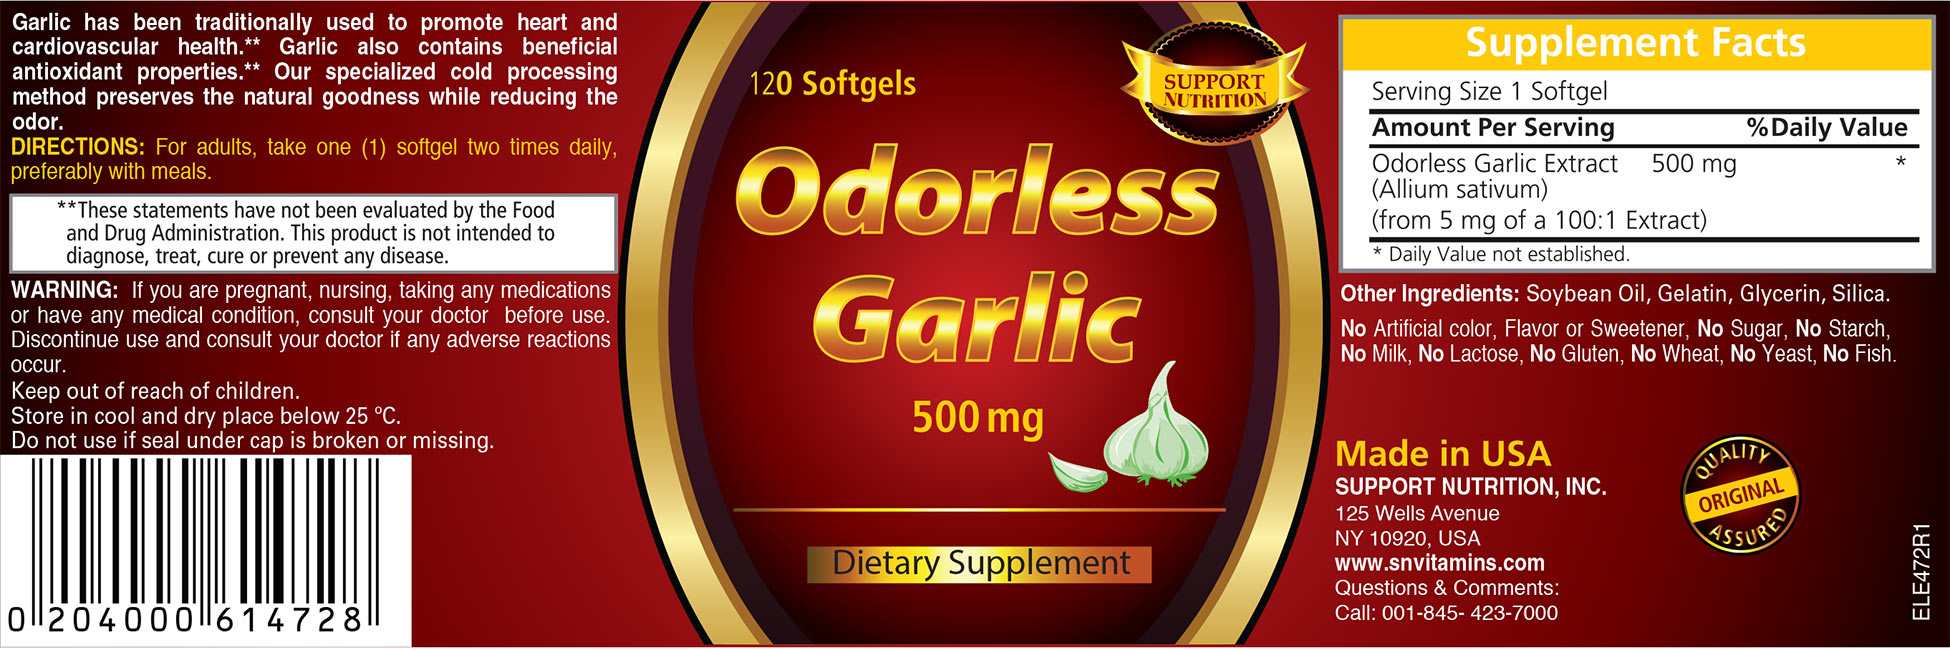 Odorless Garlic Dietary Supplement